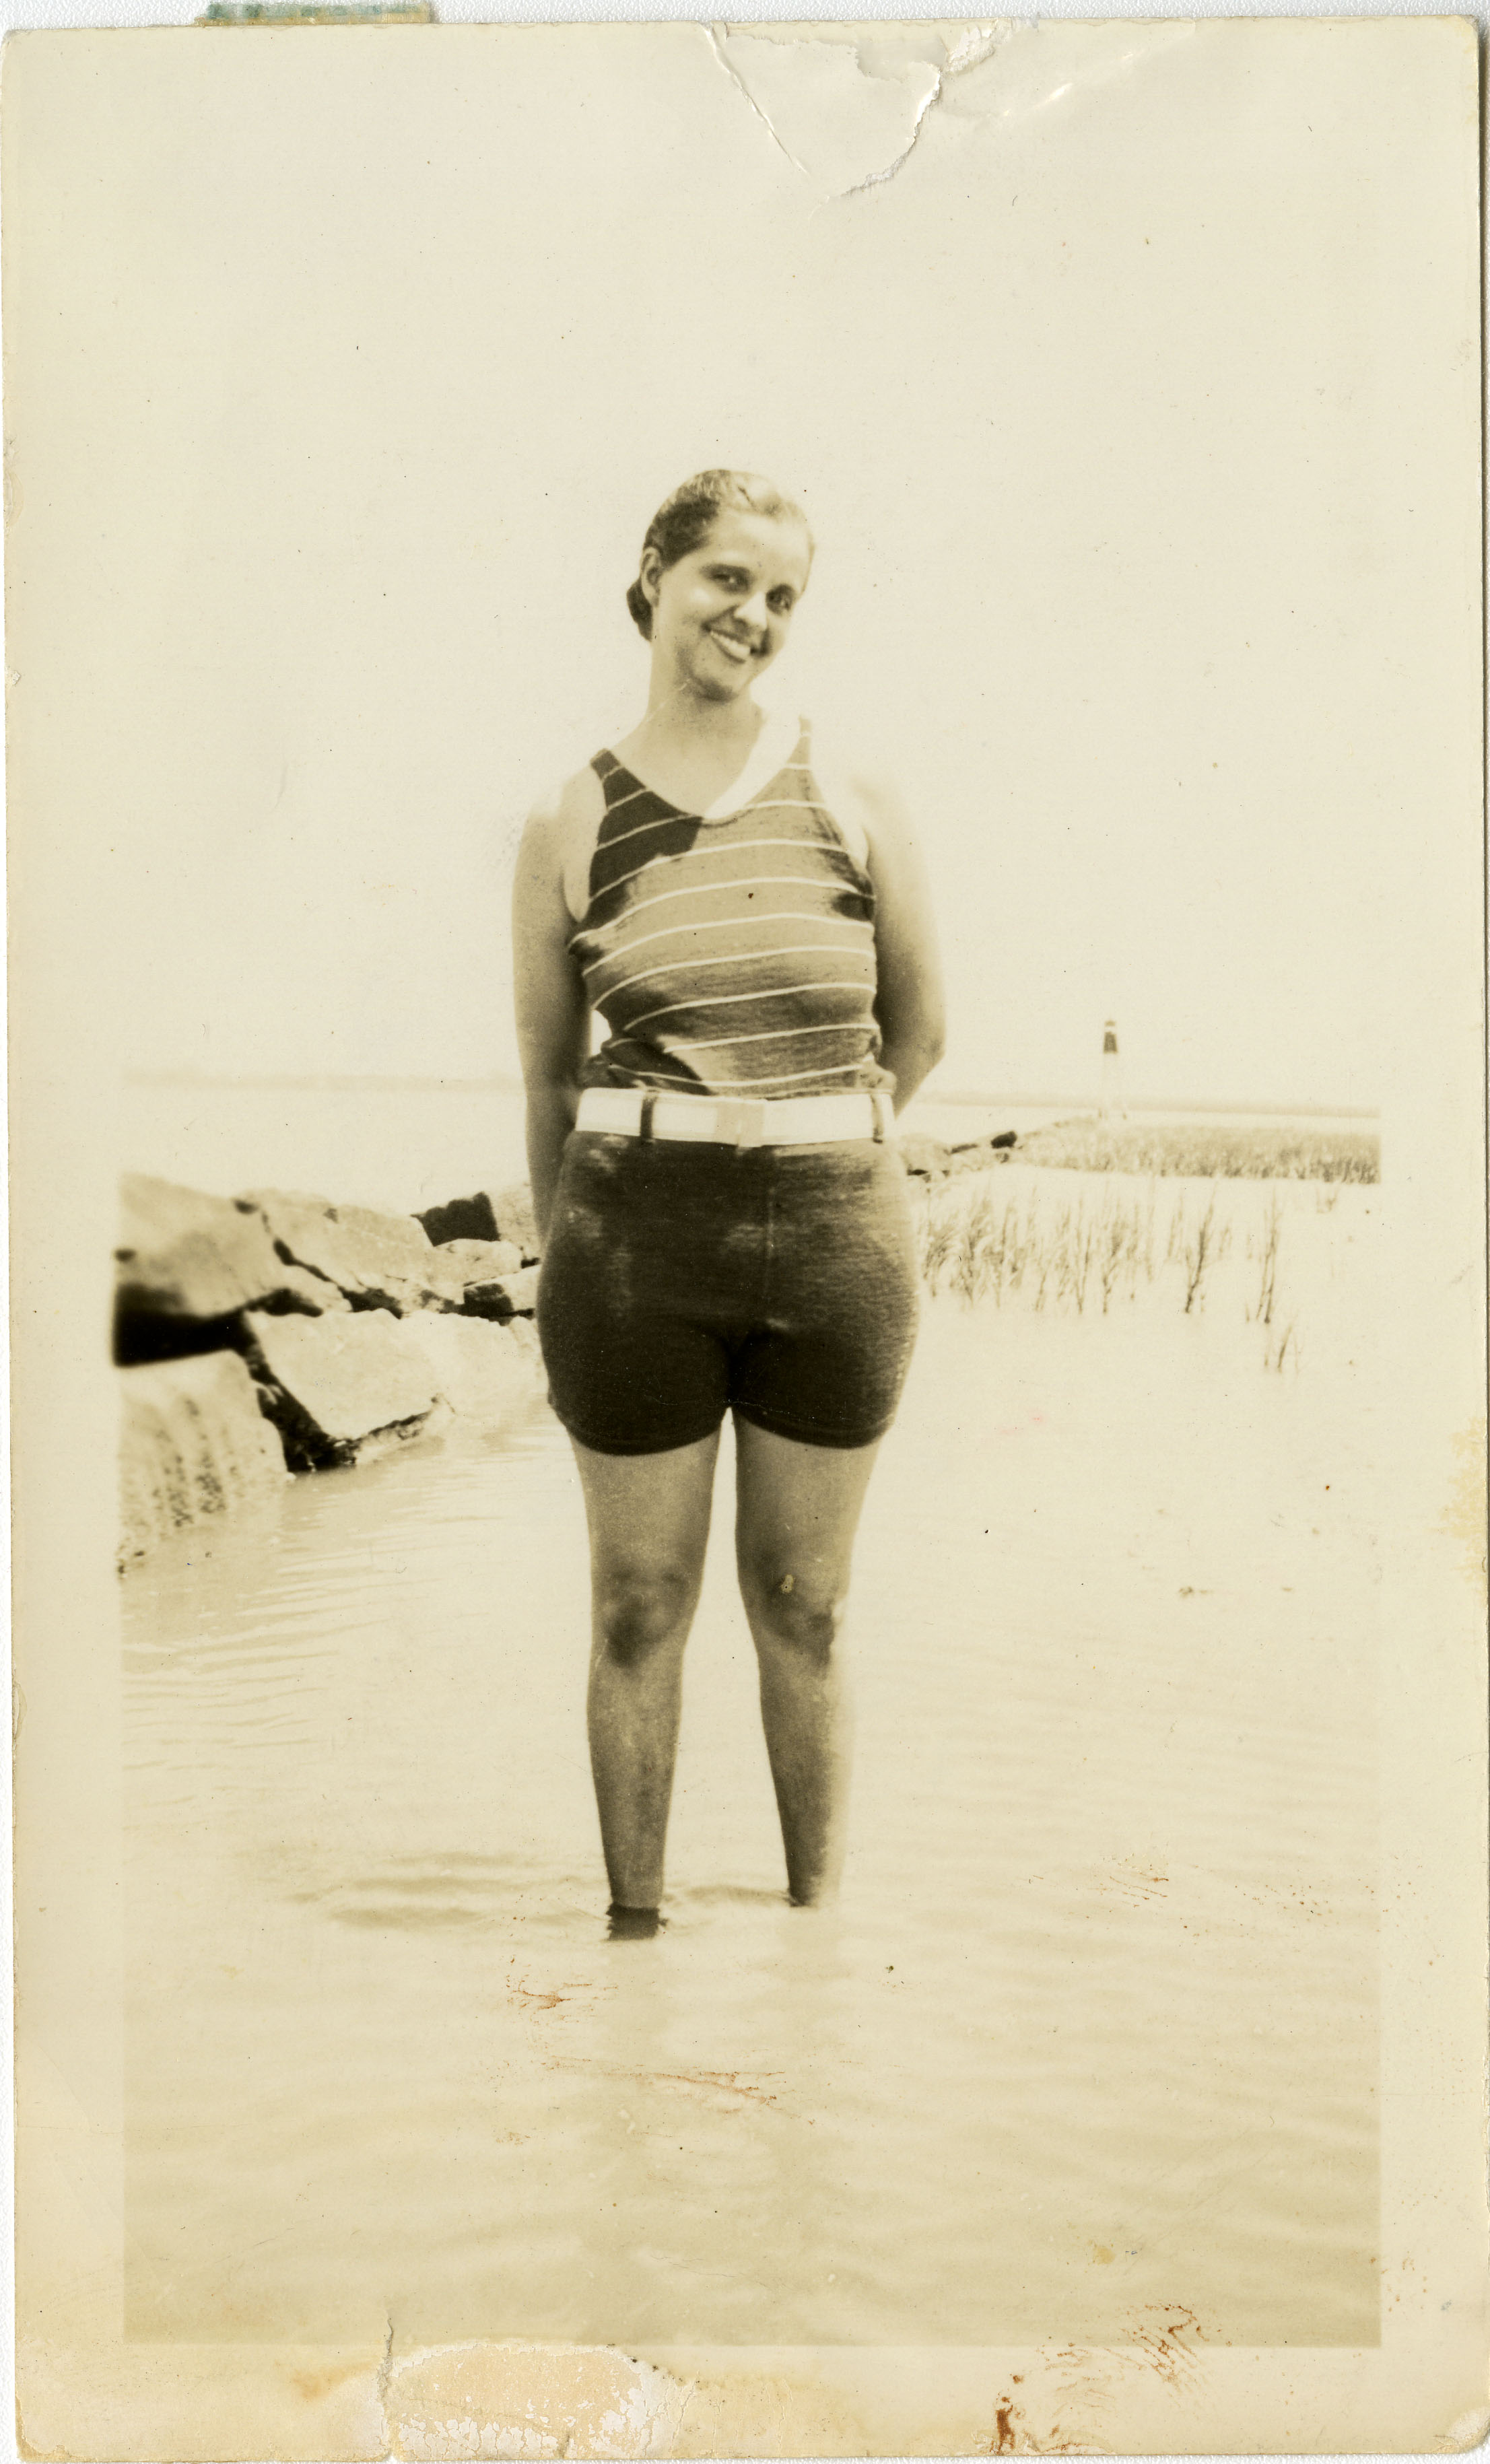 Miriam DeCosta Seabrook standing in water